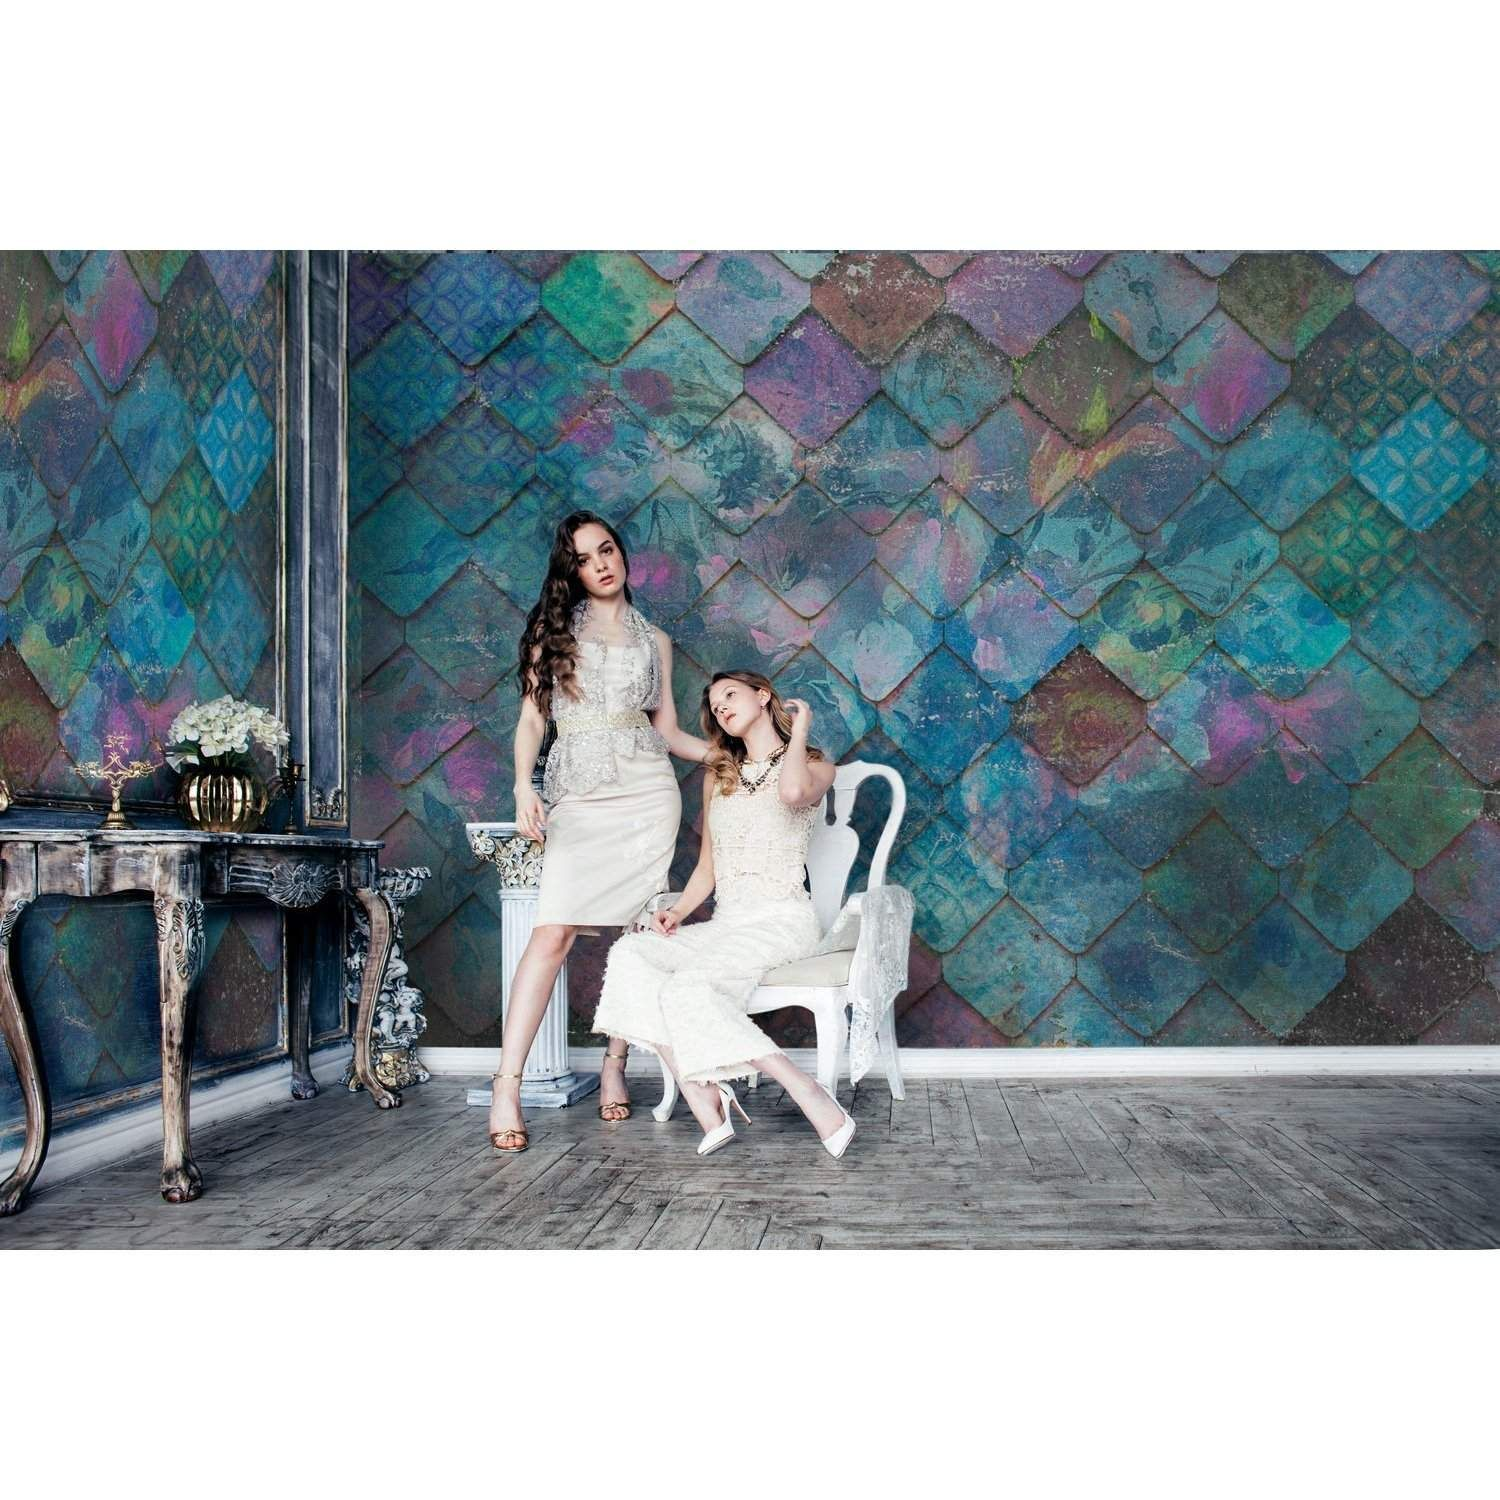 Moody Blues Colorful & Cool Design wallpaper/wall mural